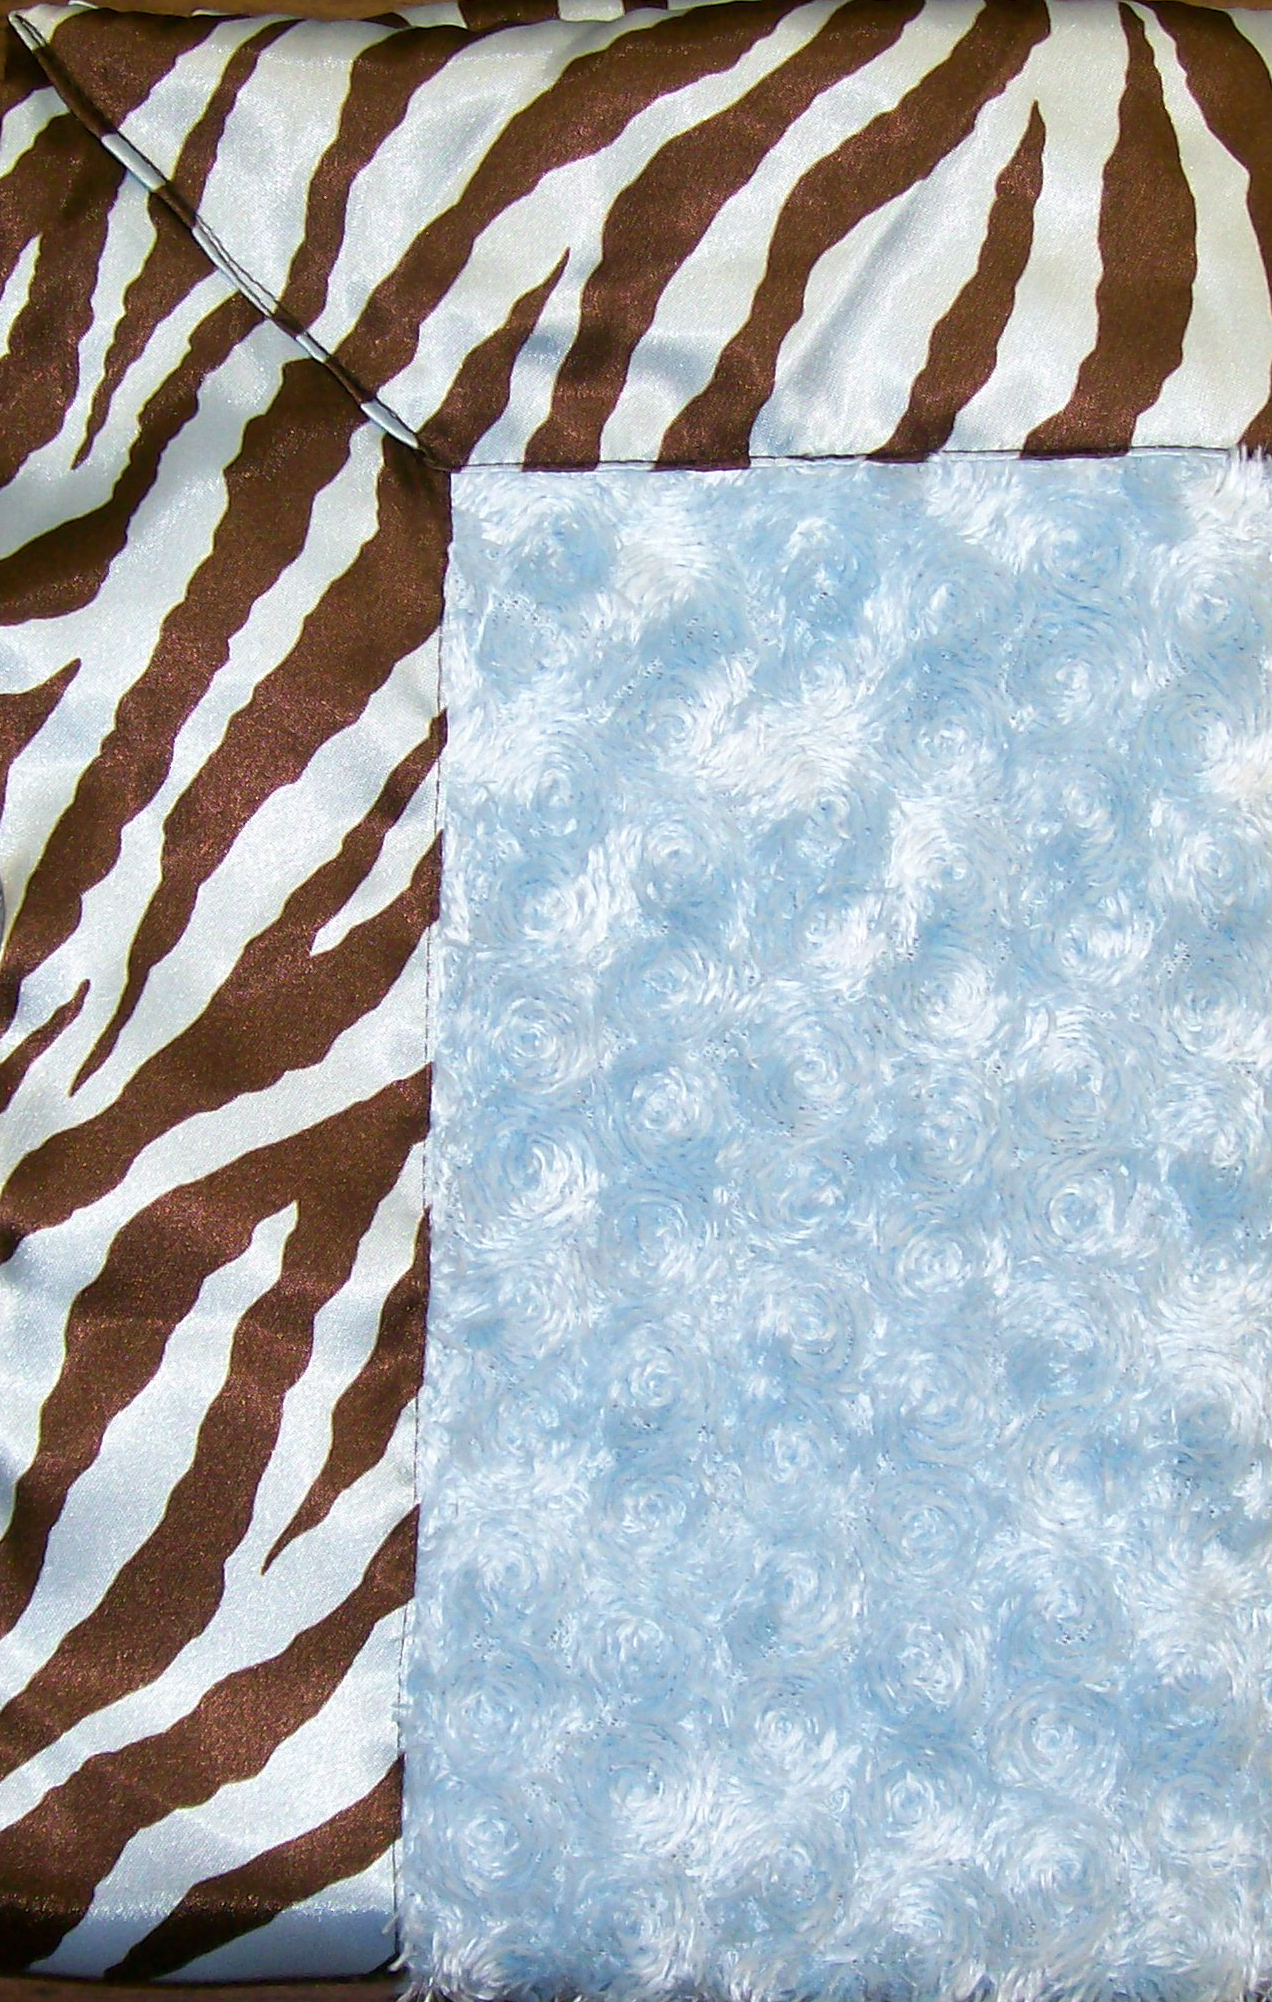 Blue Zebra satin & Fuzzy Travel Silky